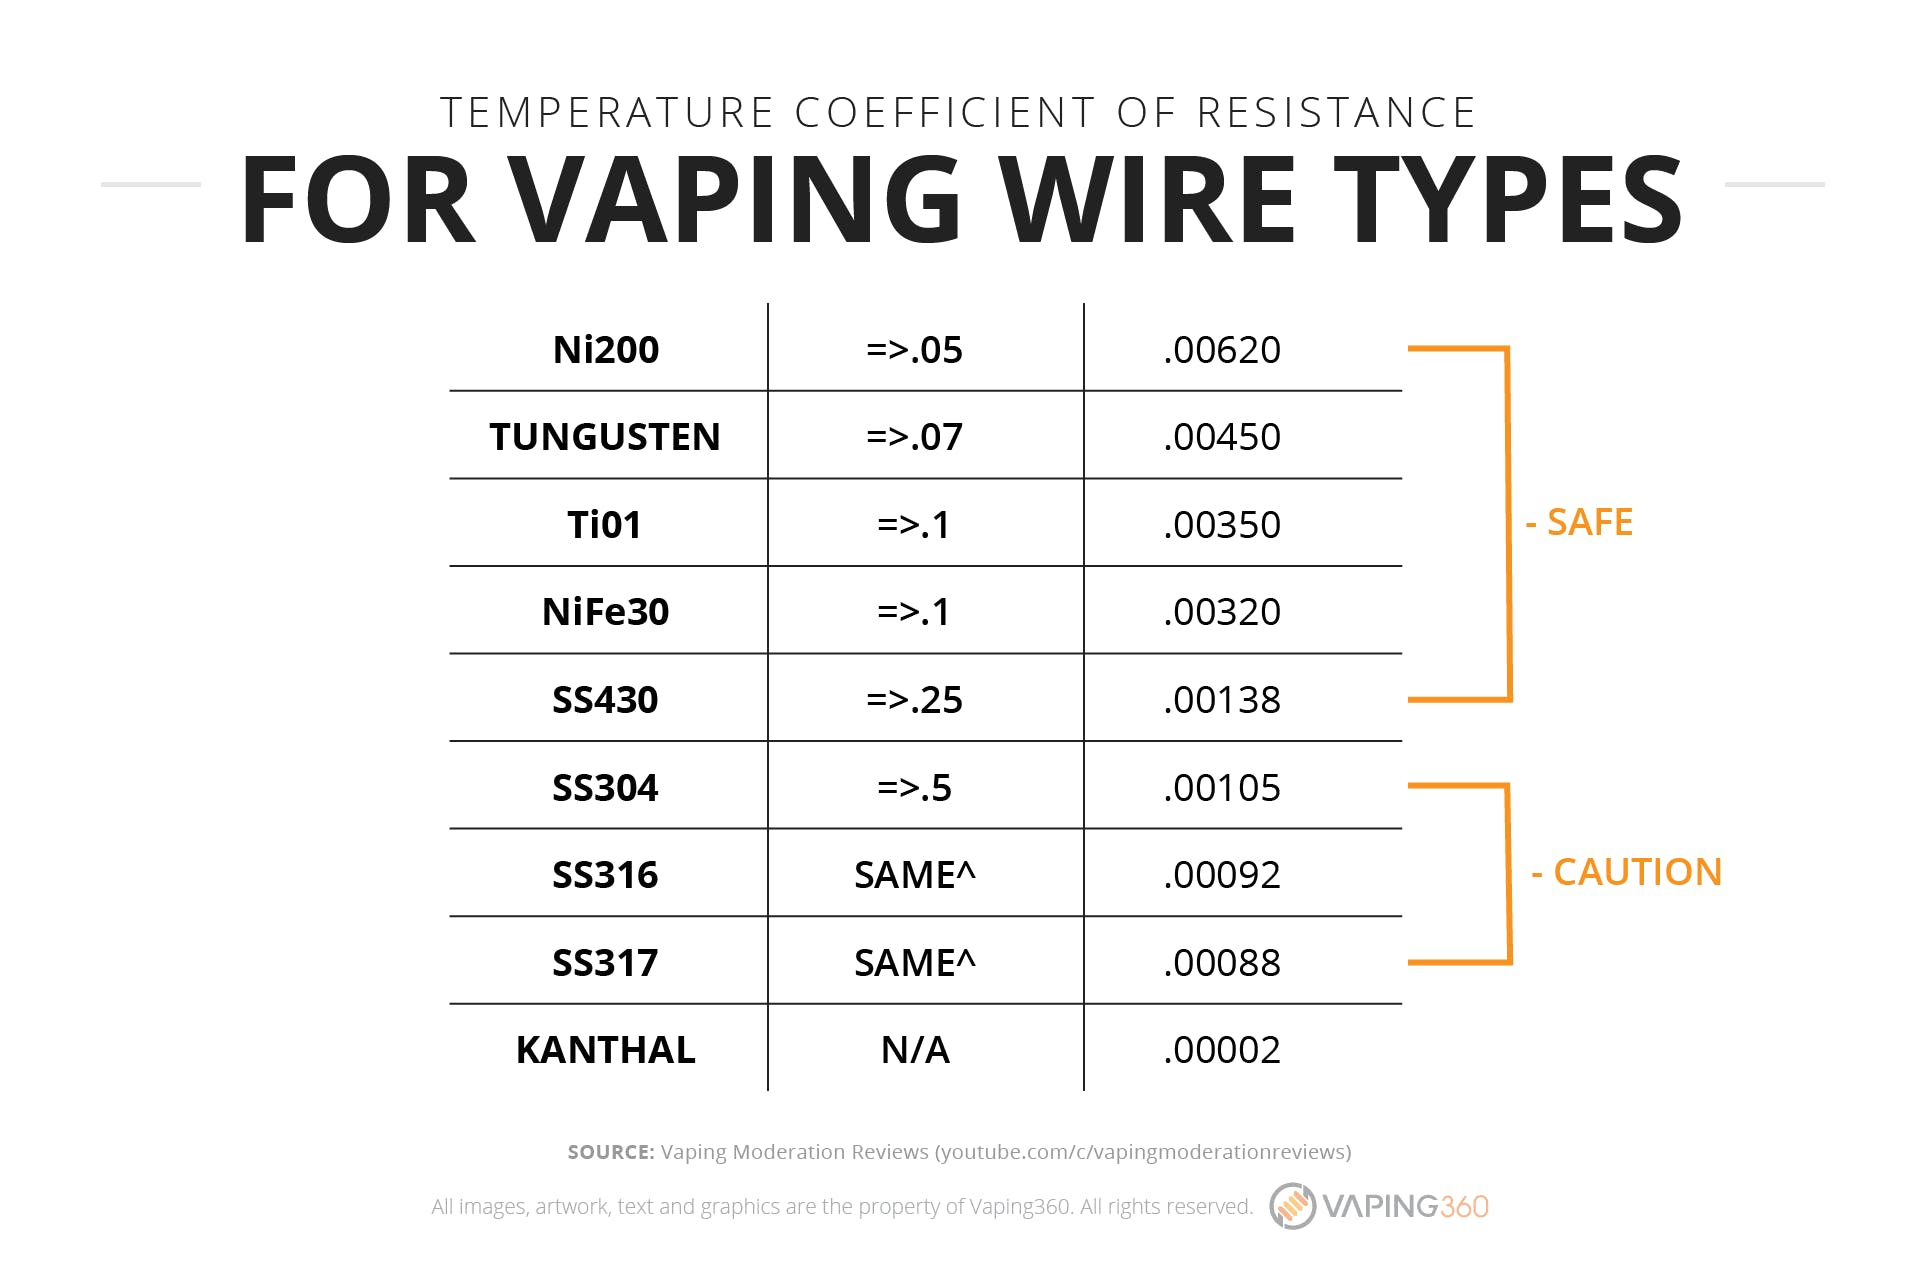 Vape Wires Kanthal Nichrome Stainless Steel And More Vaping360 Temperature Controller Wiring As Well Coefficient Of Resistance For Vaping Wire Types In Basic Terms Control